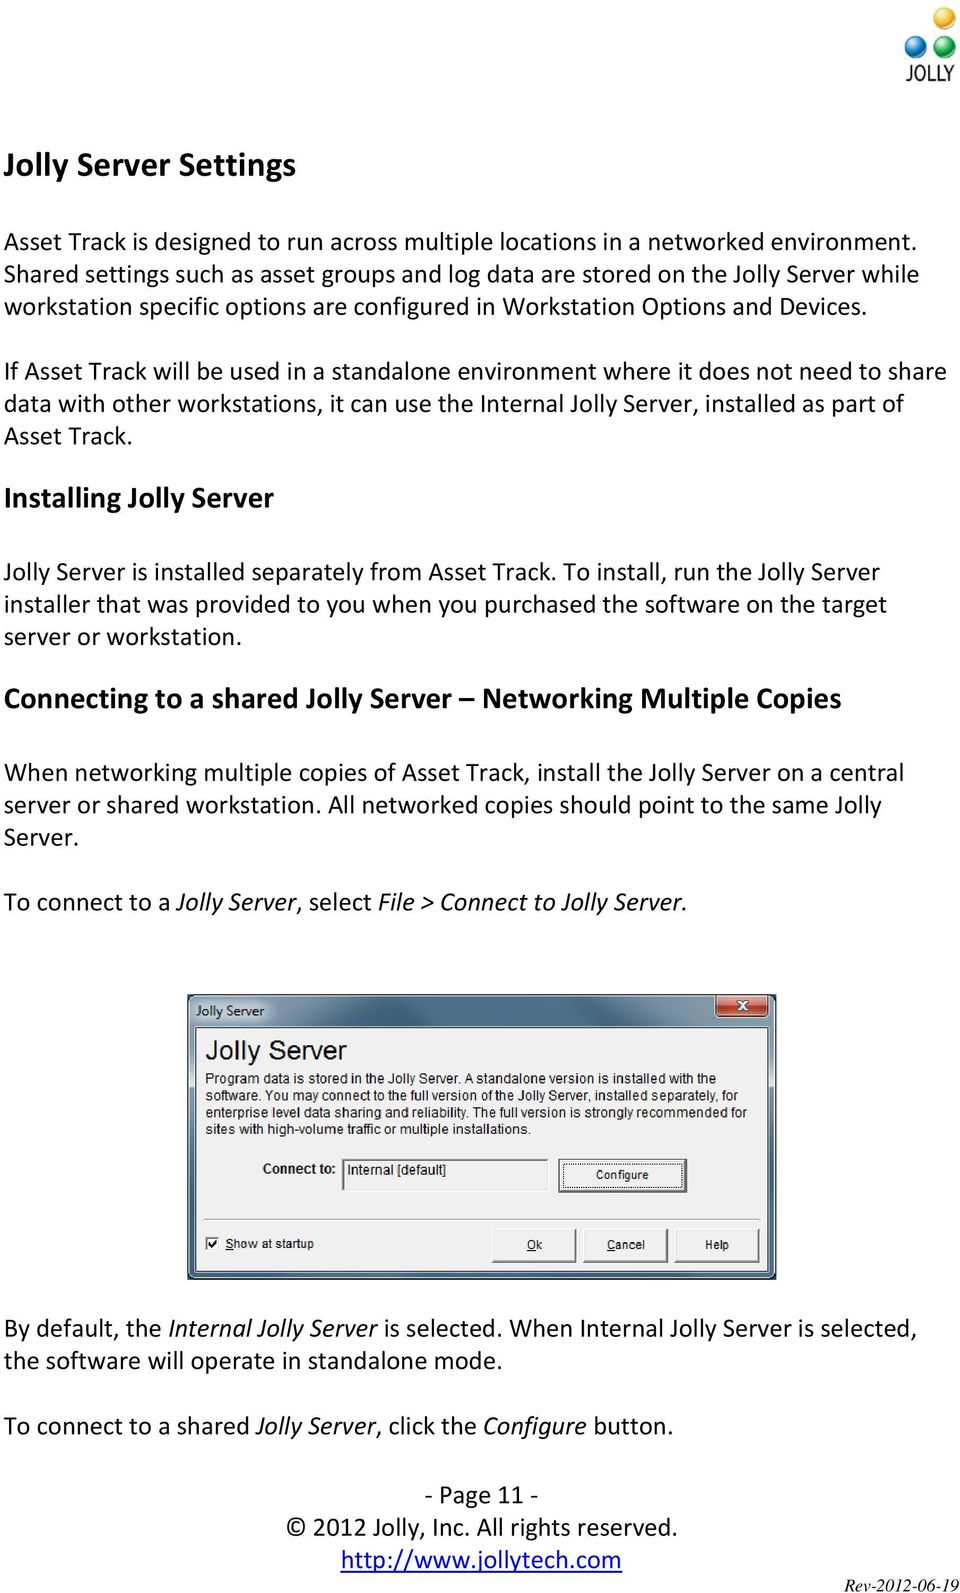 If Asset Track will be used in a standalone environment where it does not need to share data with other workstations, it can use the Internal Jolly Server, installed as part of Asset Track.